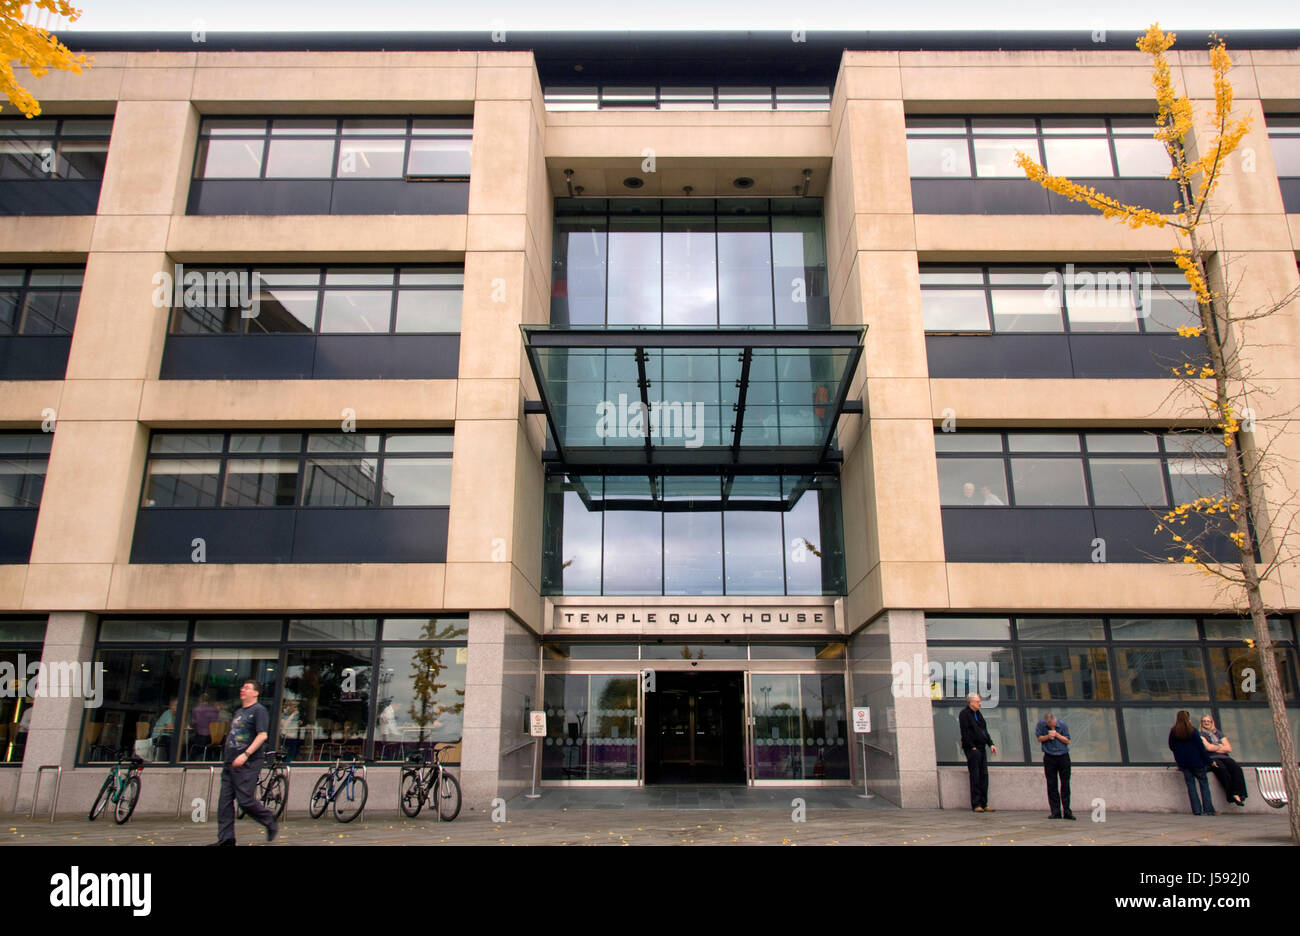 The Square, Temple Quay, Bristol, showing Temple Quay House. - Stock Image